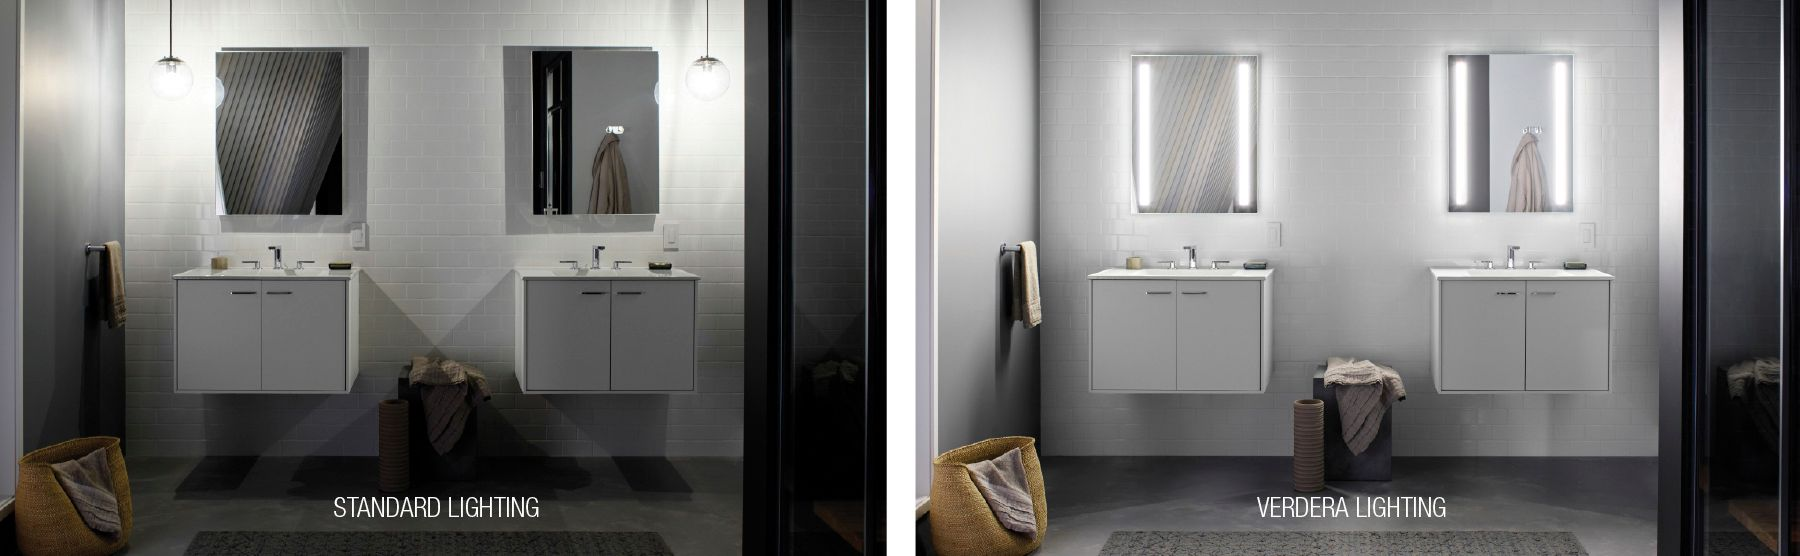 The Verdera Collection Now Offers Lighted Mirrors And Medicine Cabinets.  They Provide Even, Optimally Bright Lighting, Which Eliminates Harsh  Shadows And ...